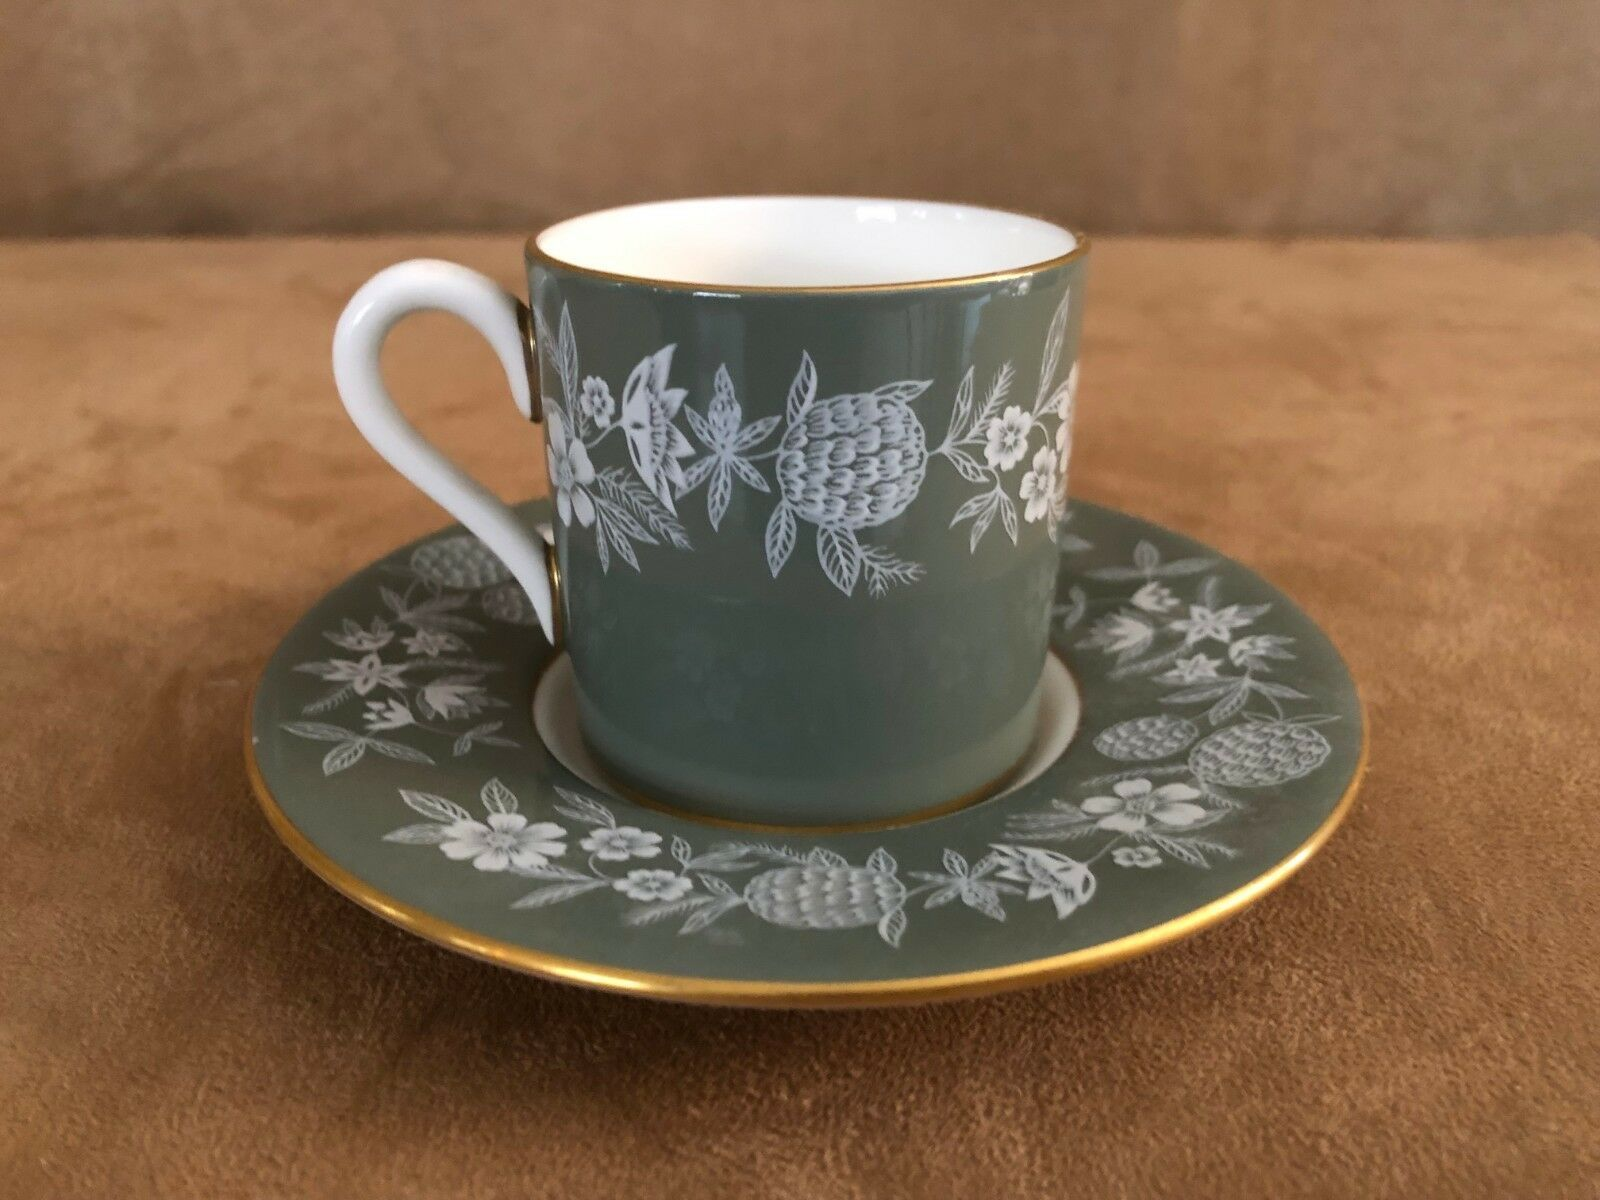 Wedgwood Fieldfare Vintage Cup and Saucer coffee tea lot demitasse olive green